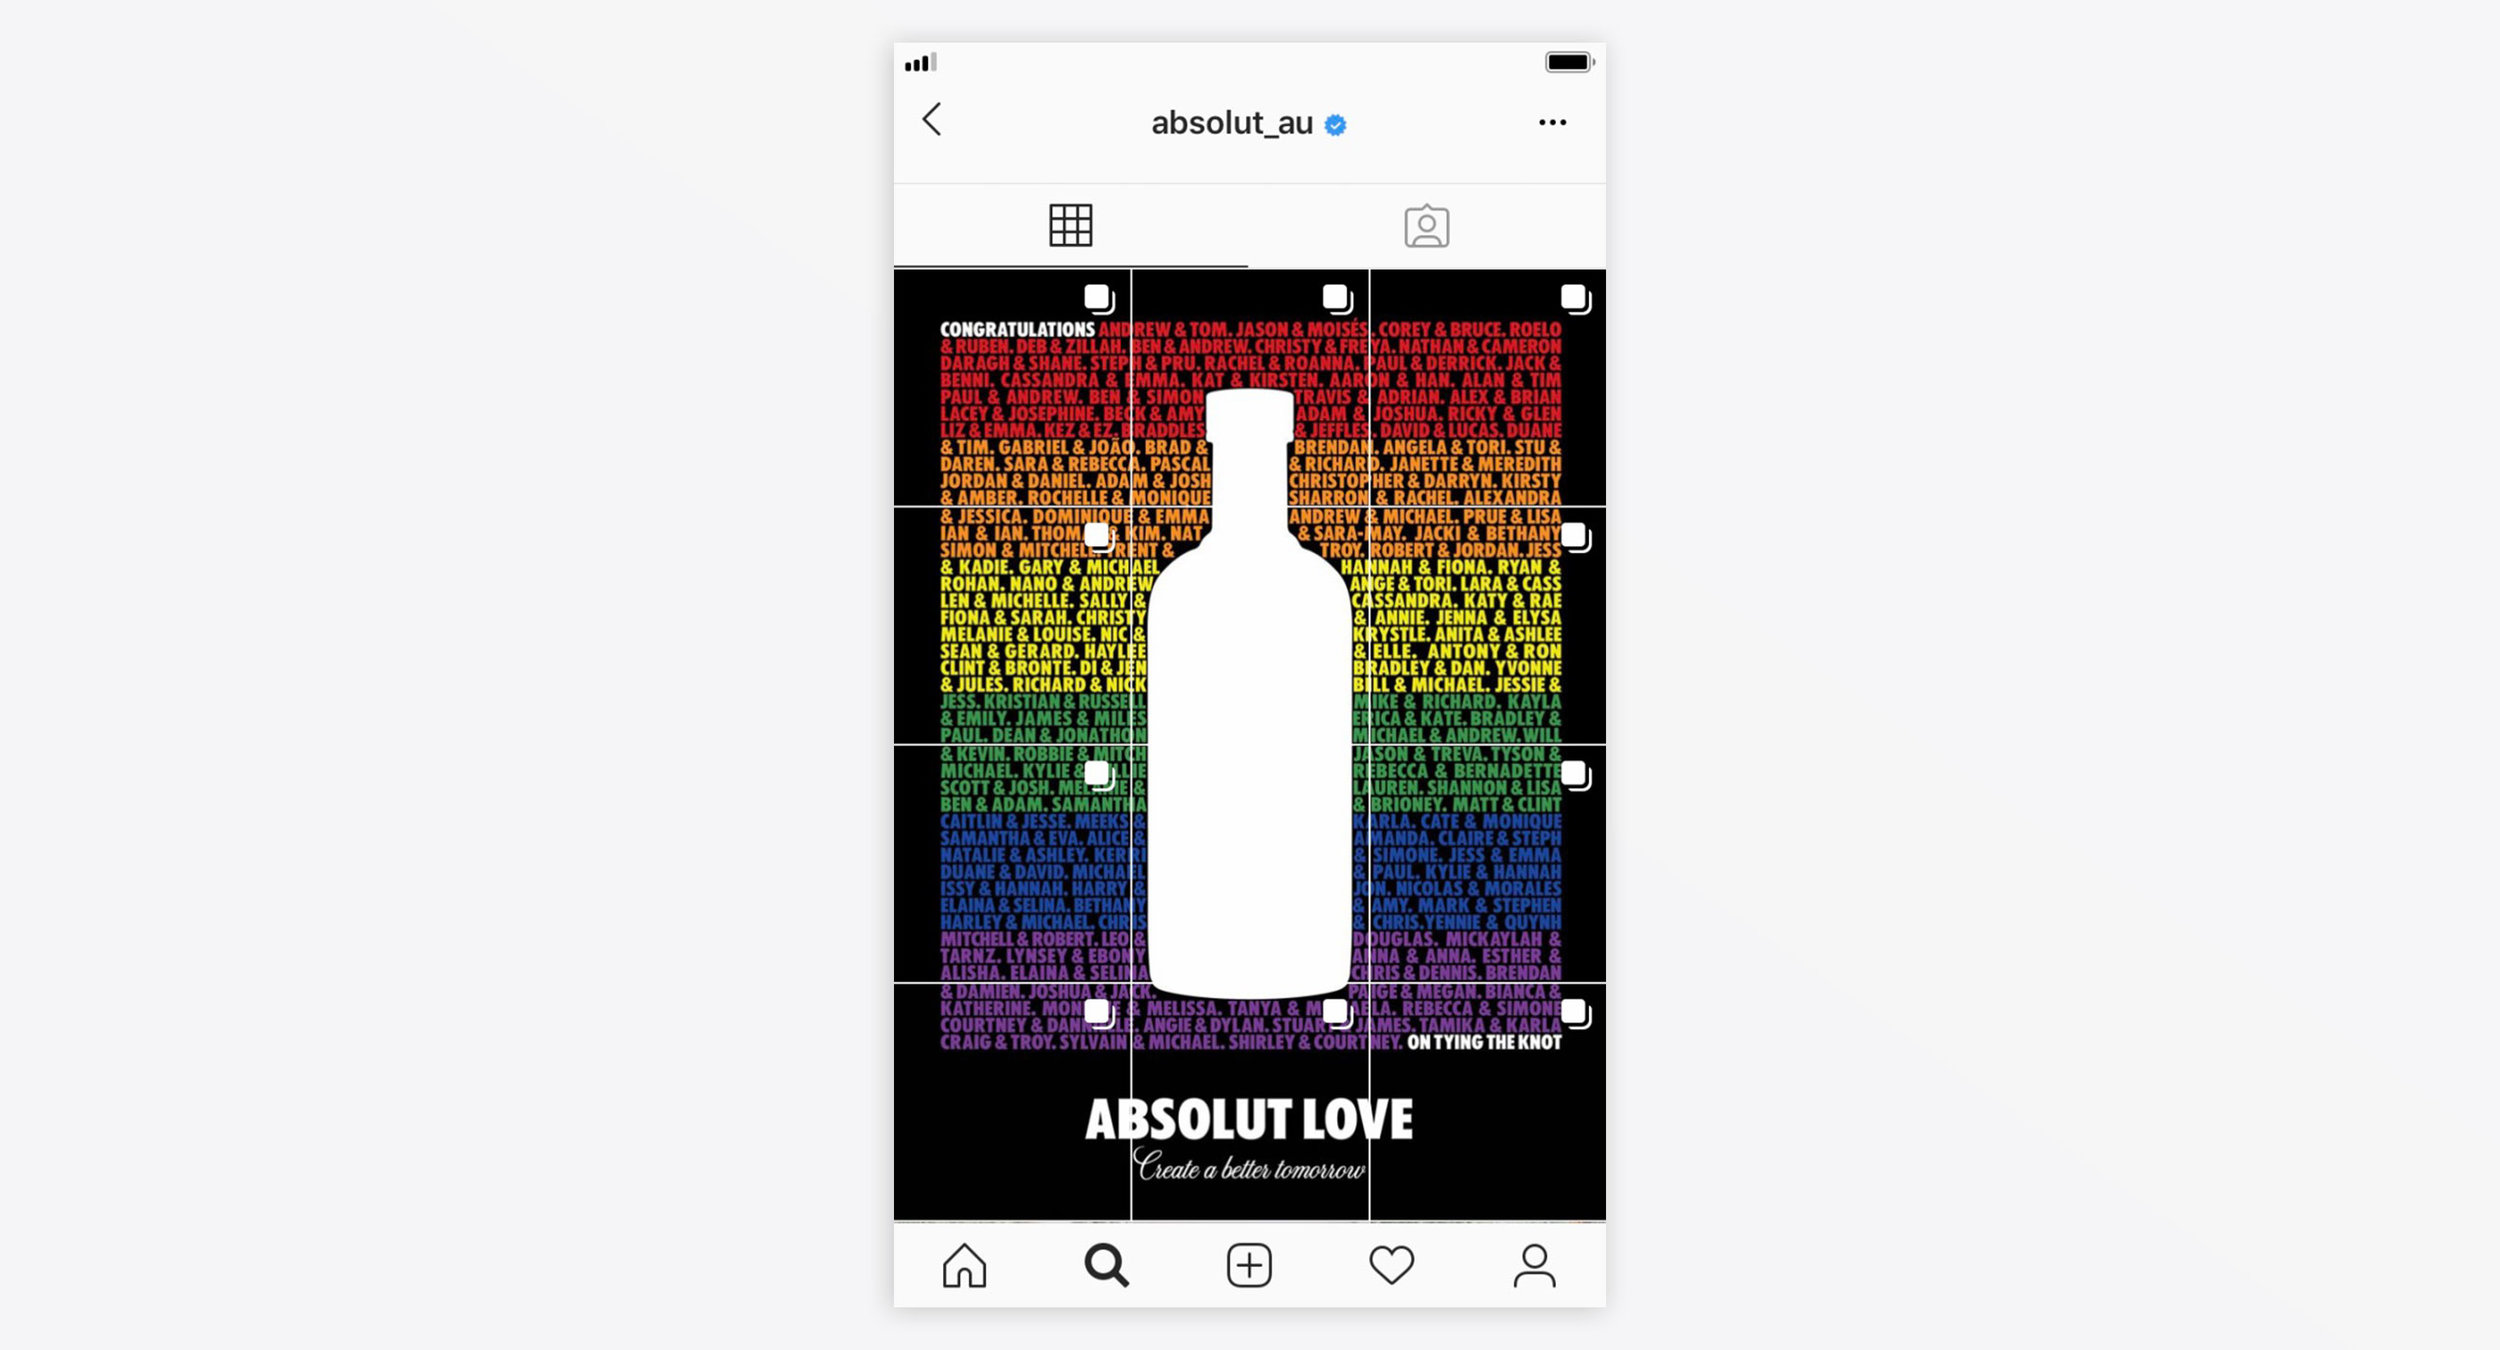 Instagram takeover featuring all the names of participating couples